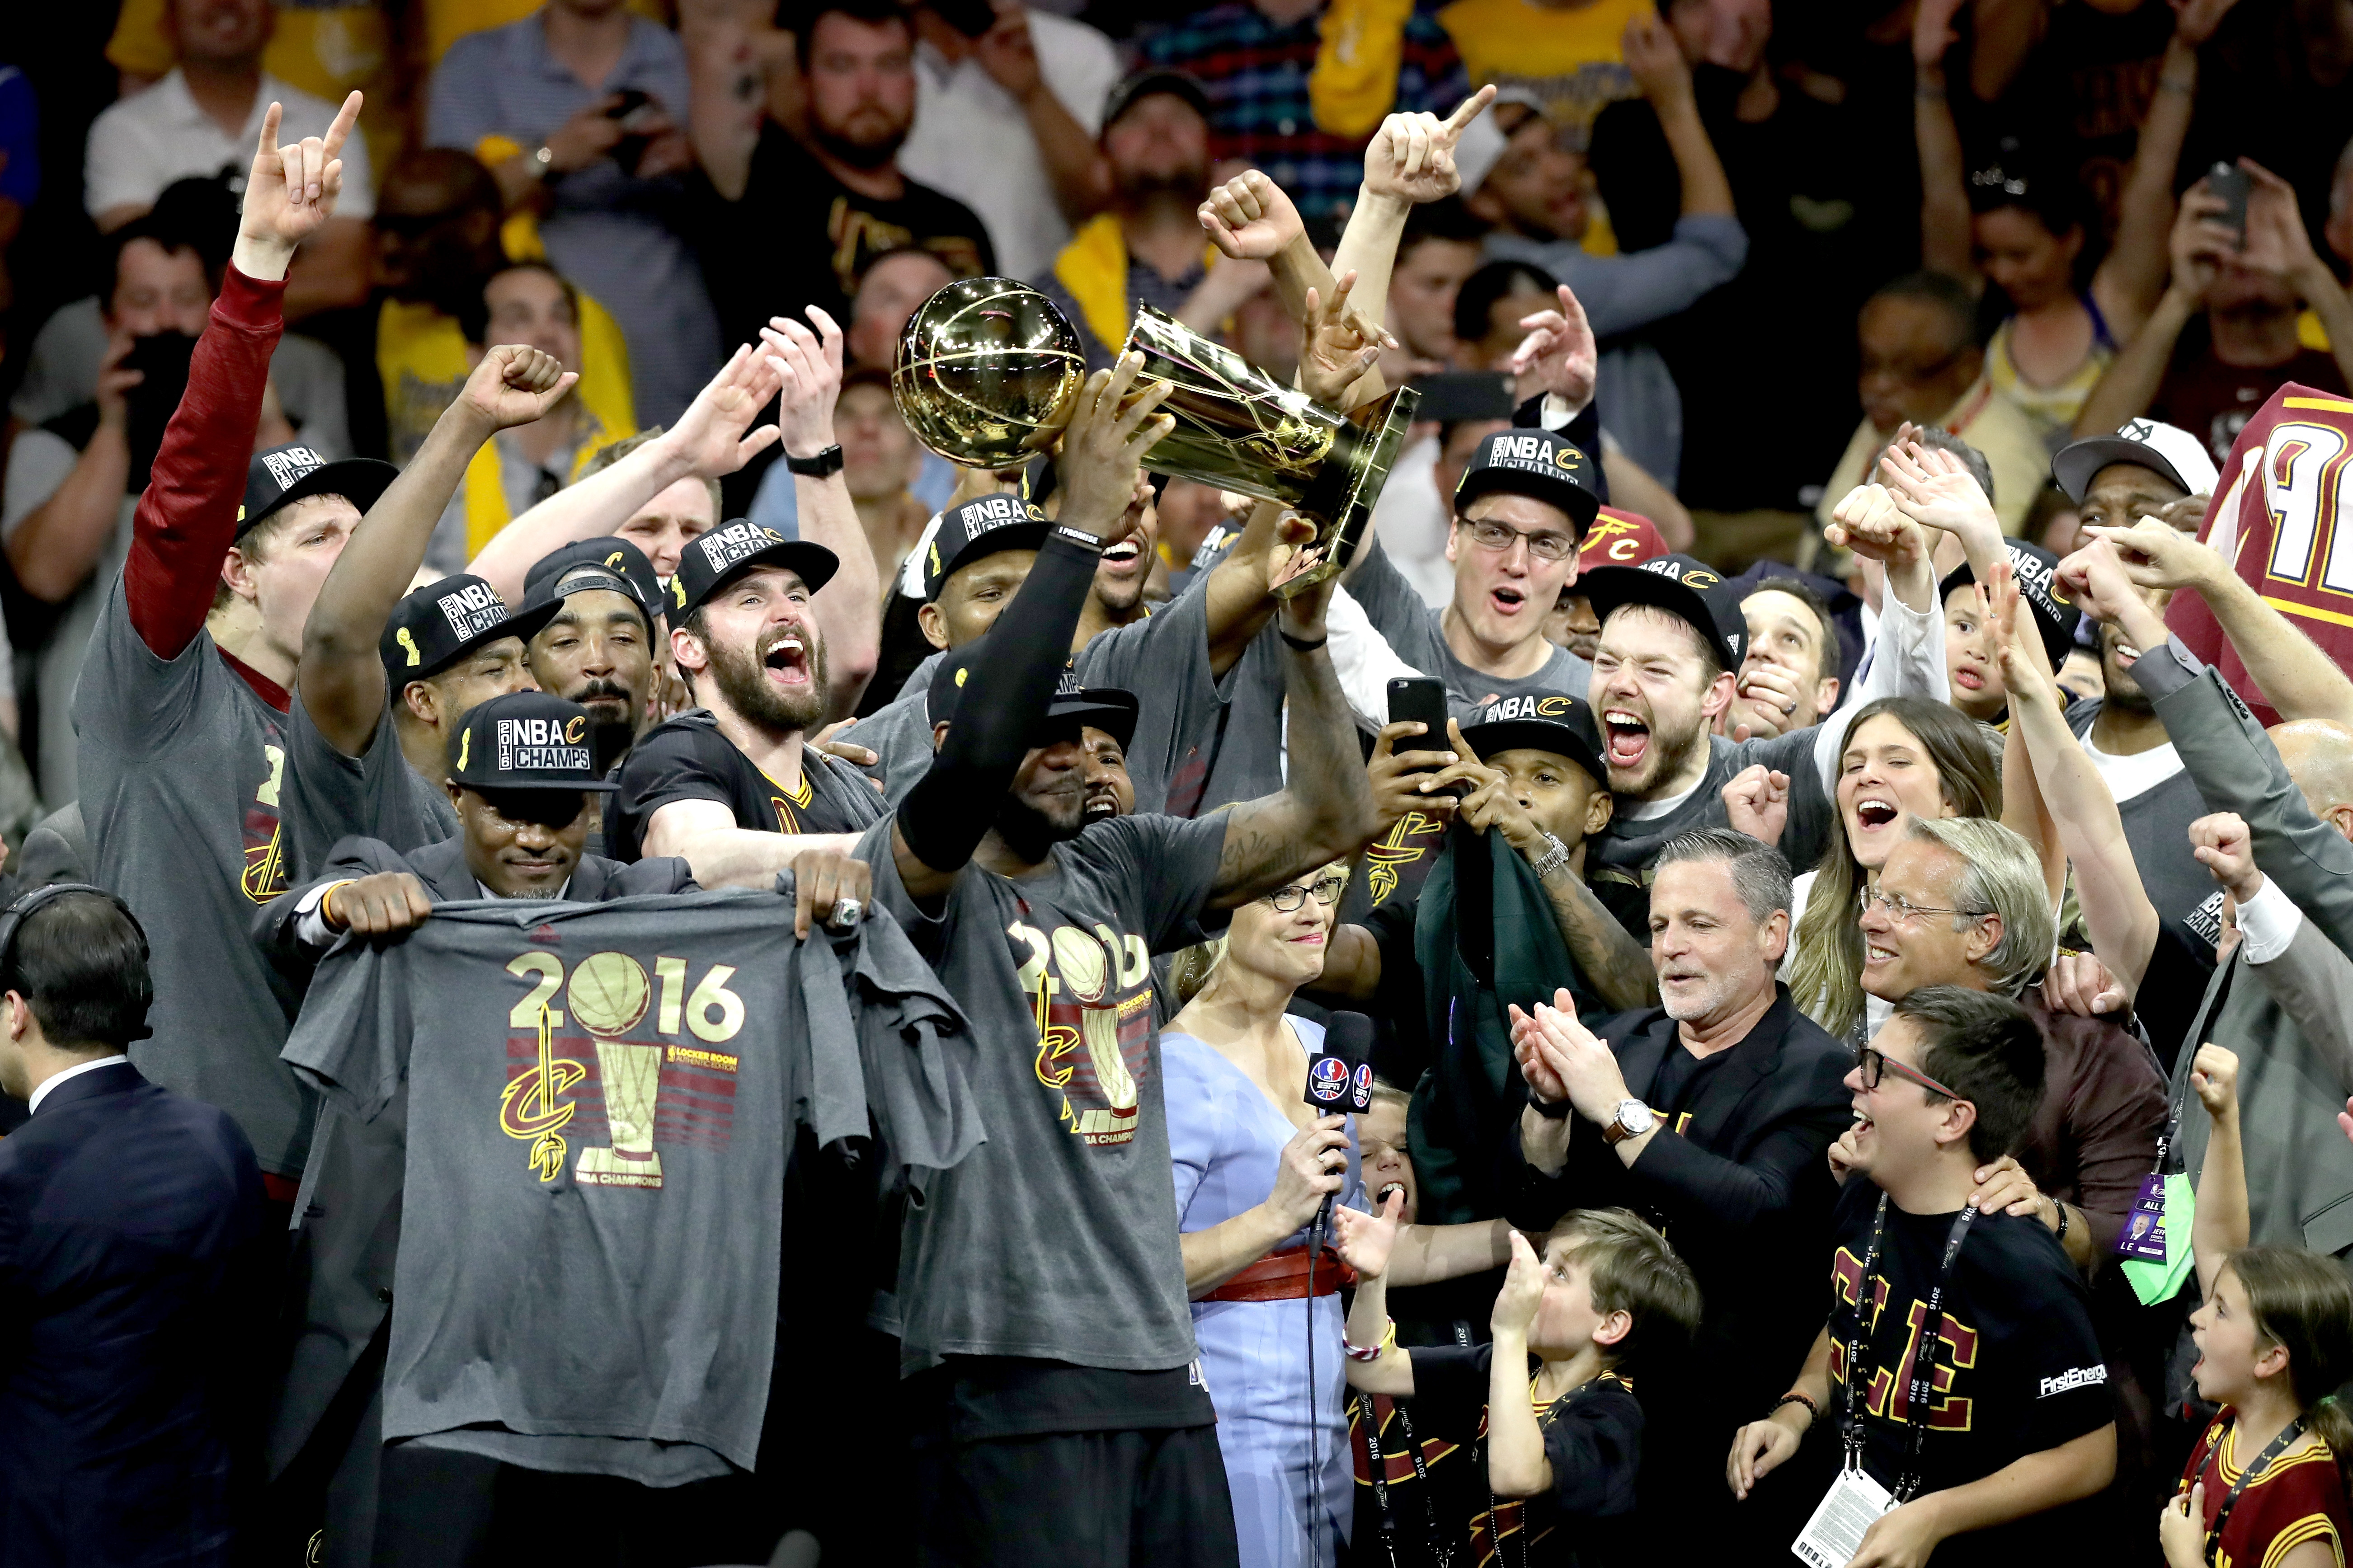 Cleveland Cavaliers: LeBron James and his free agency in ...